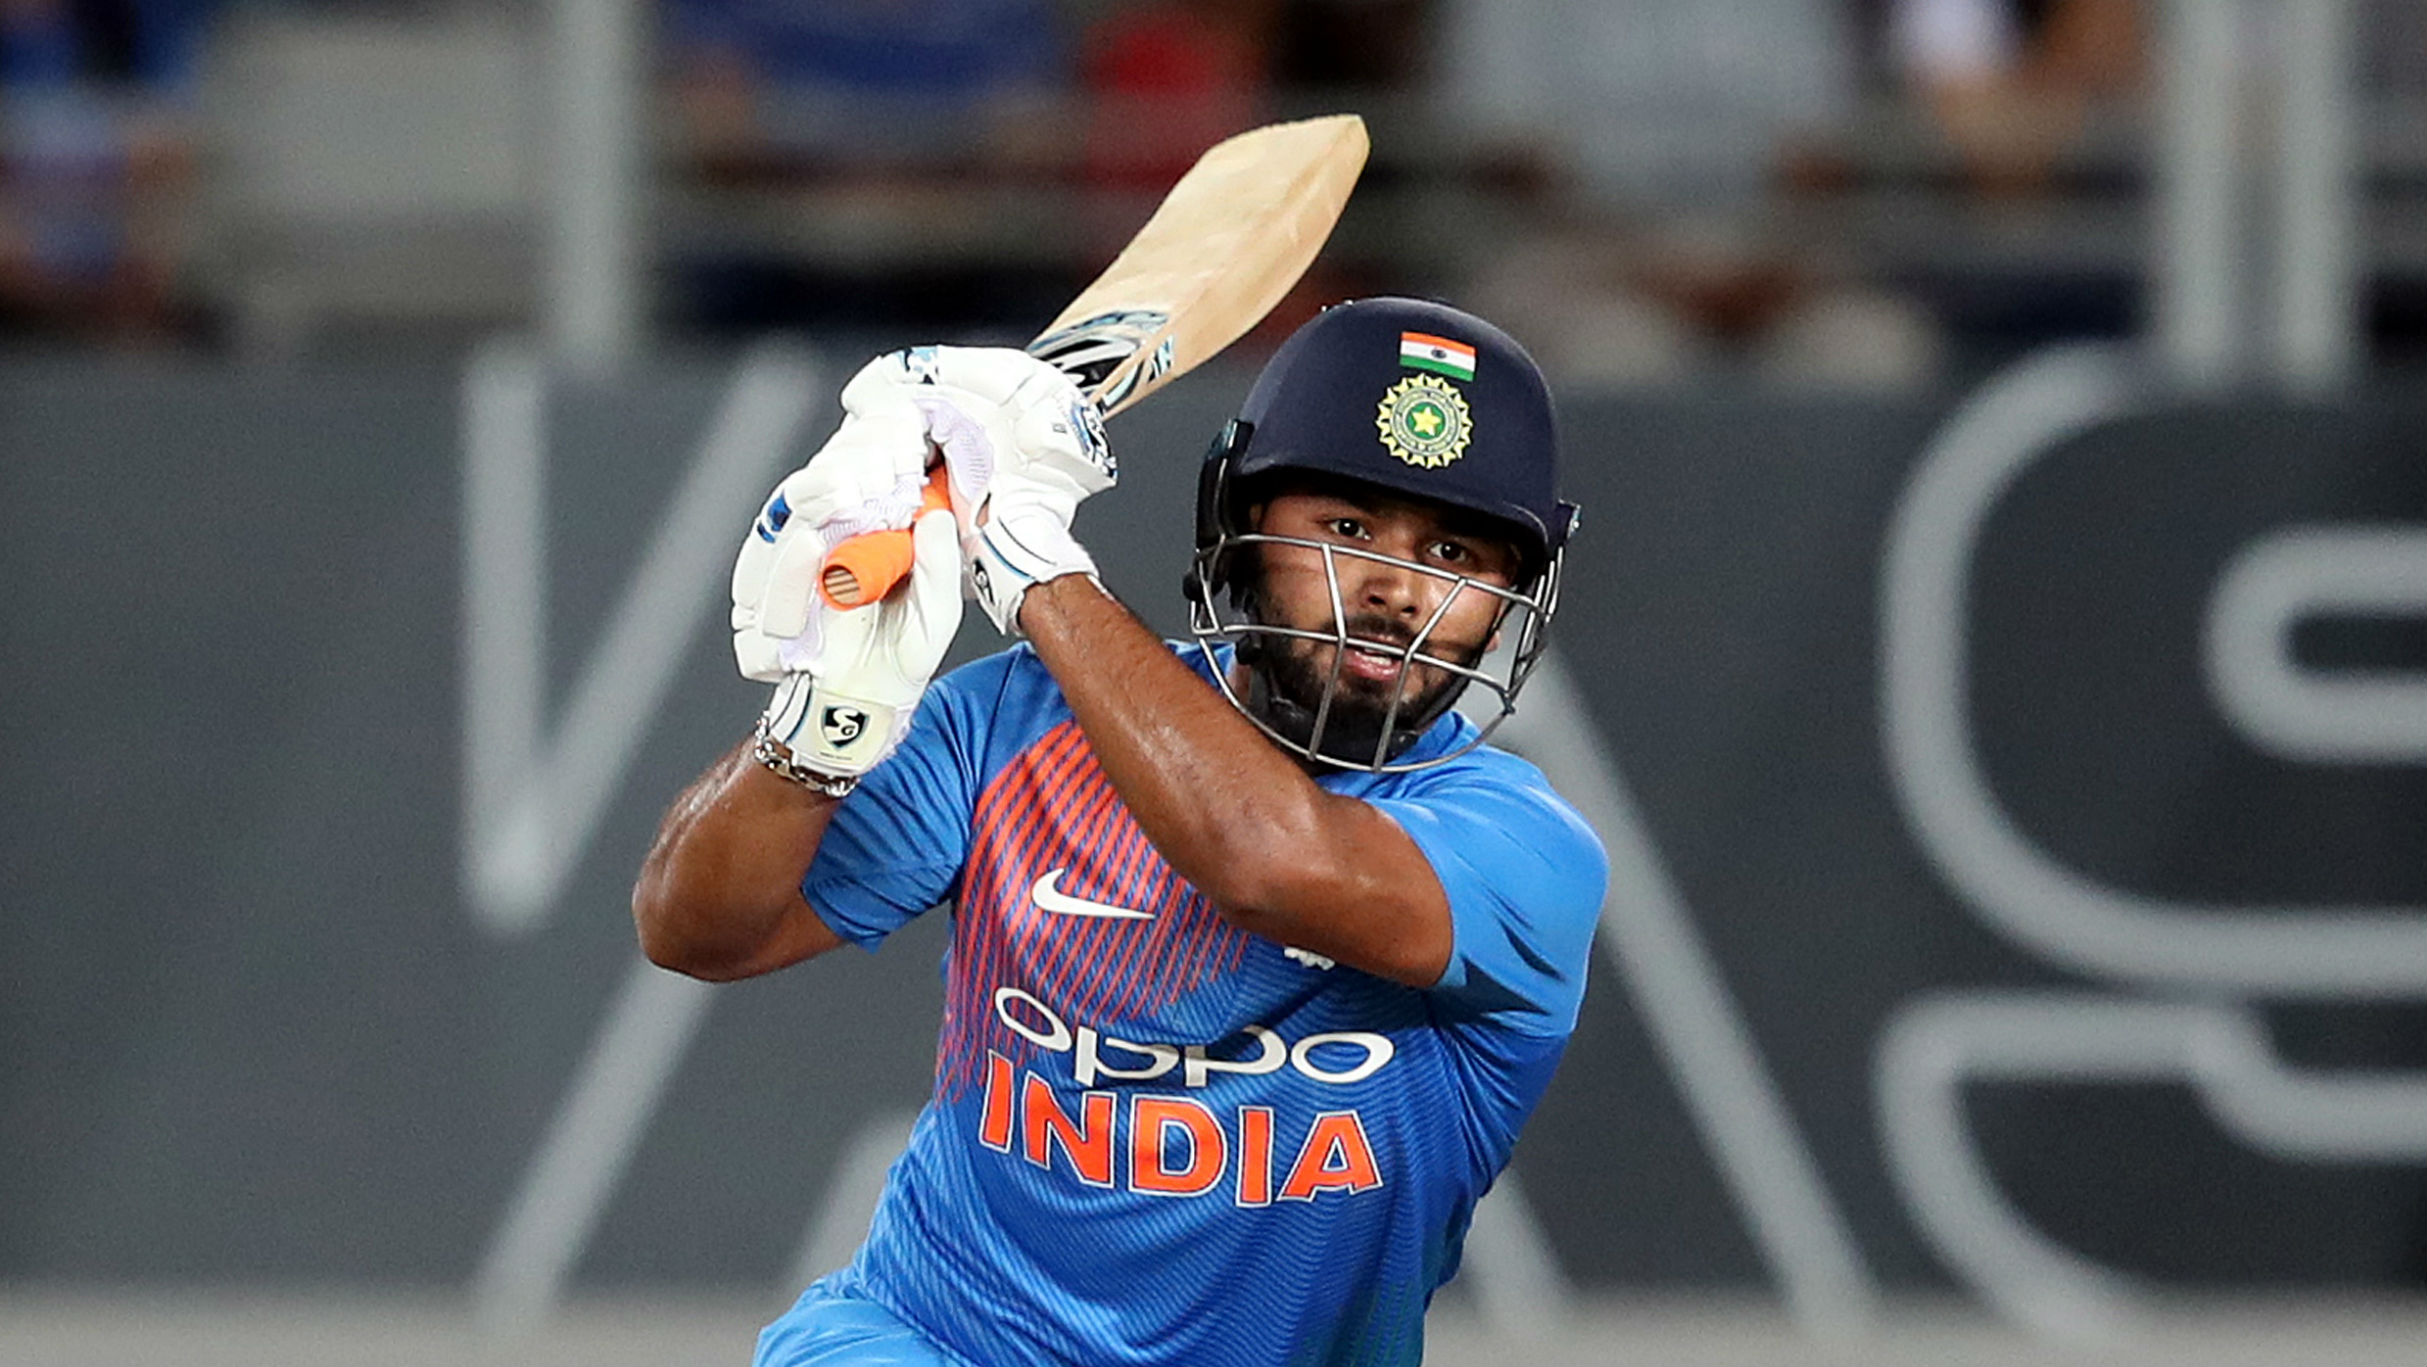 Rishabh Pant's stormy century gave India an edge, reached a century of interesting turn Funny Jokes